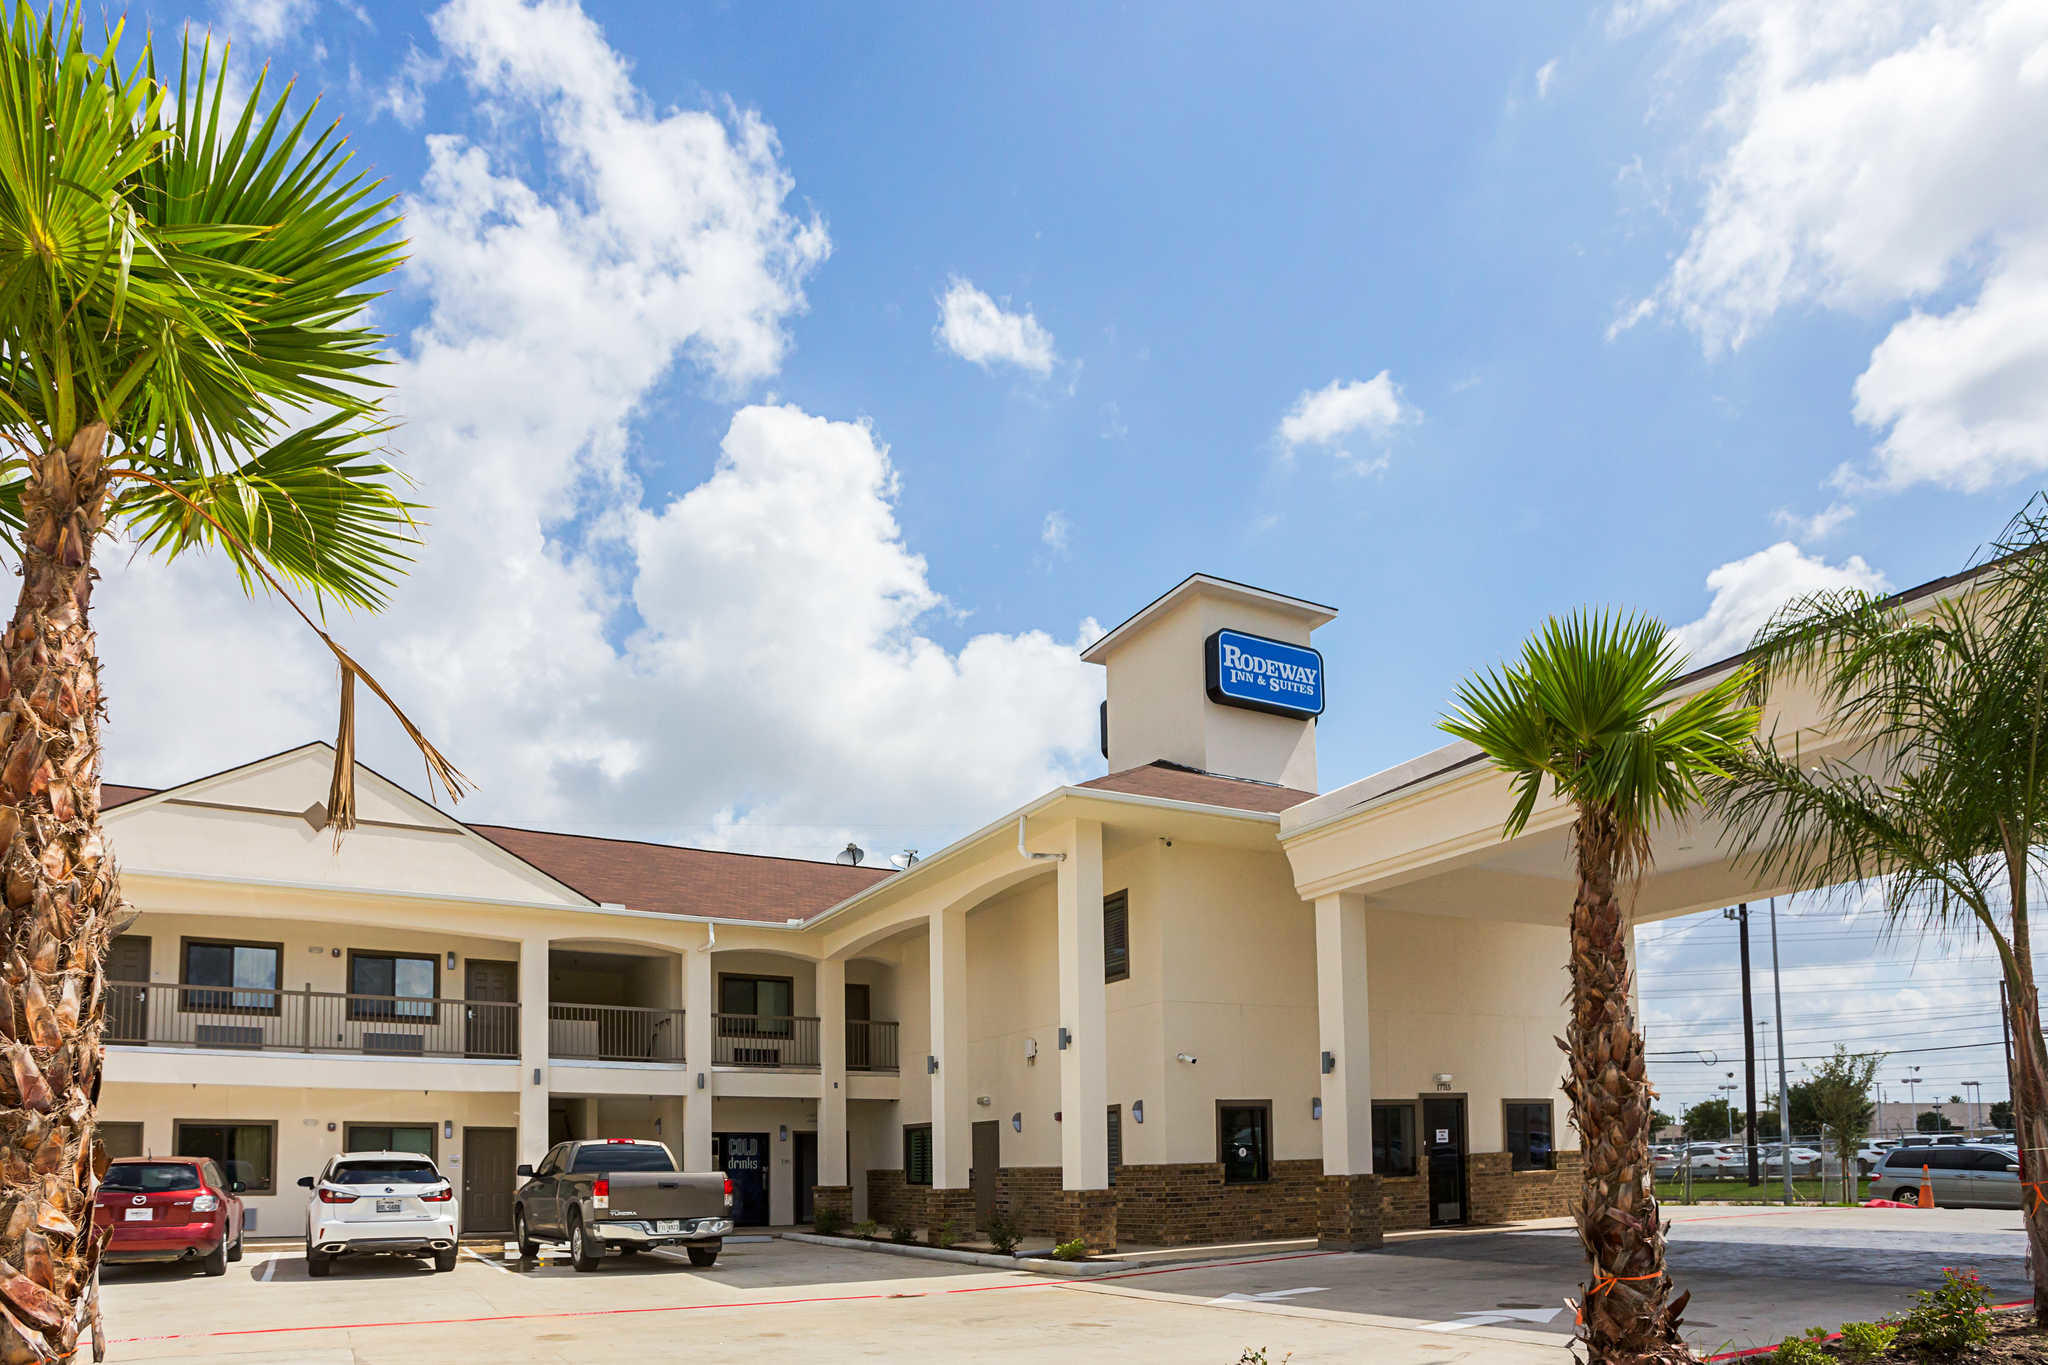 Rodeway inn suites houston i 45 north near spring Hilton garden inn houston cypress station